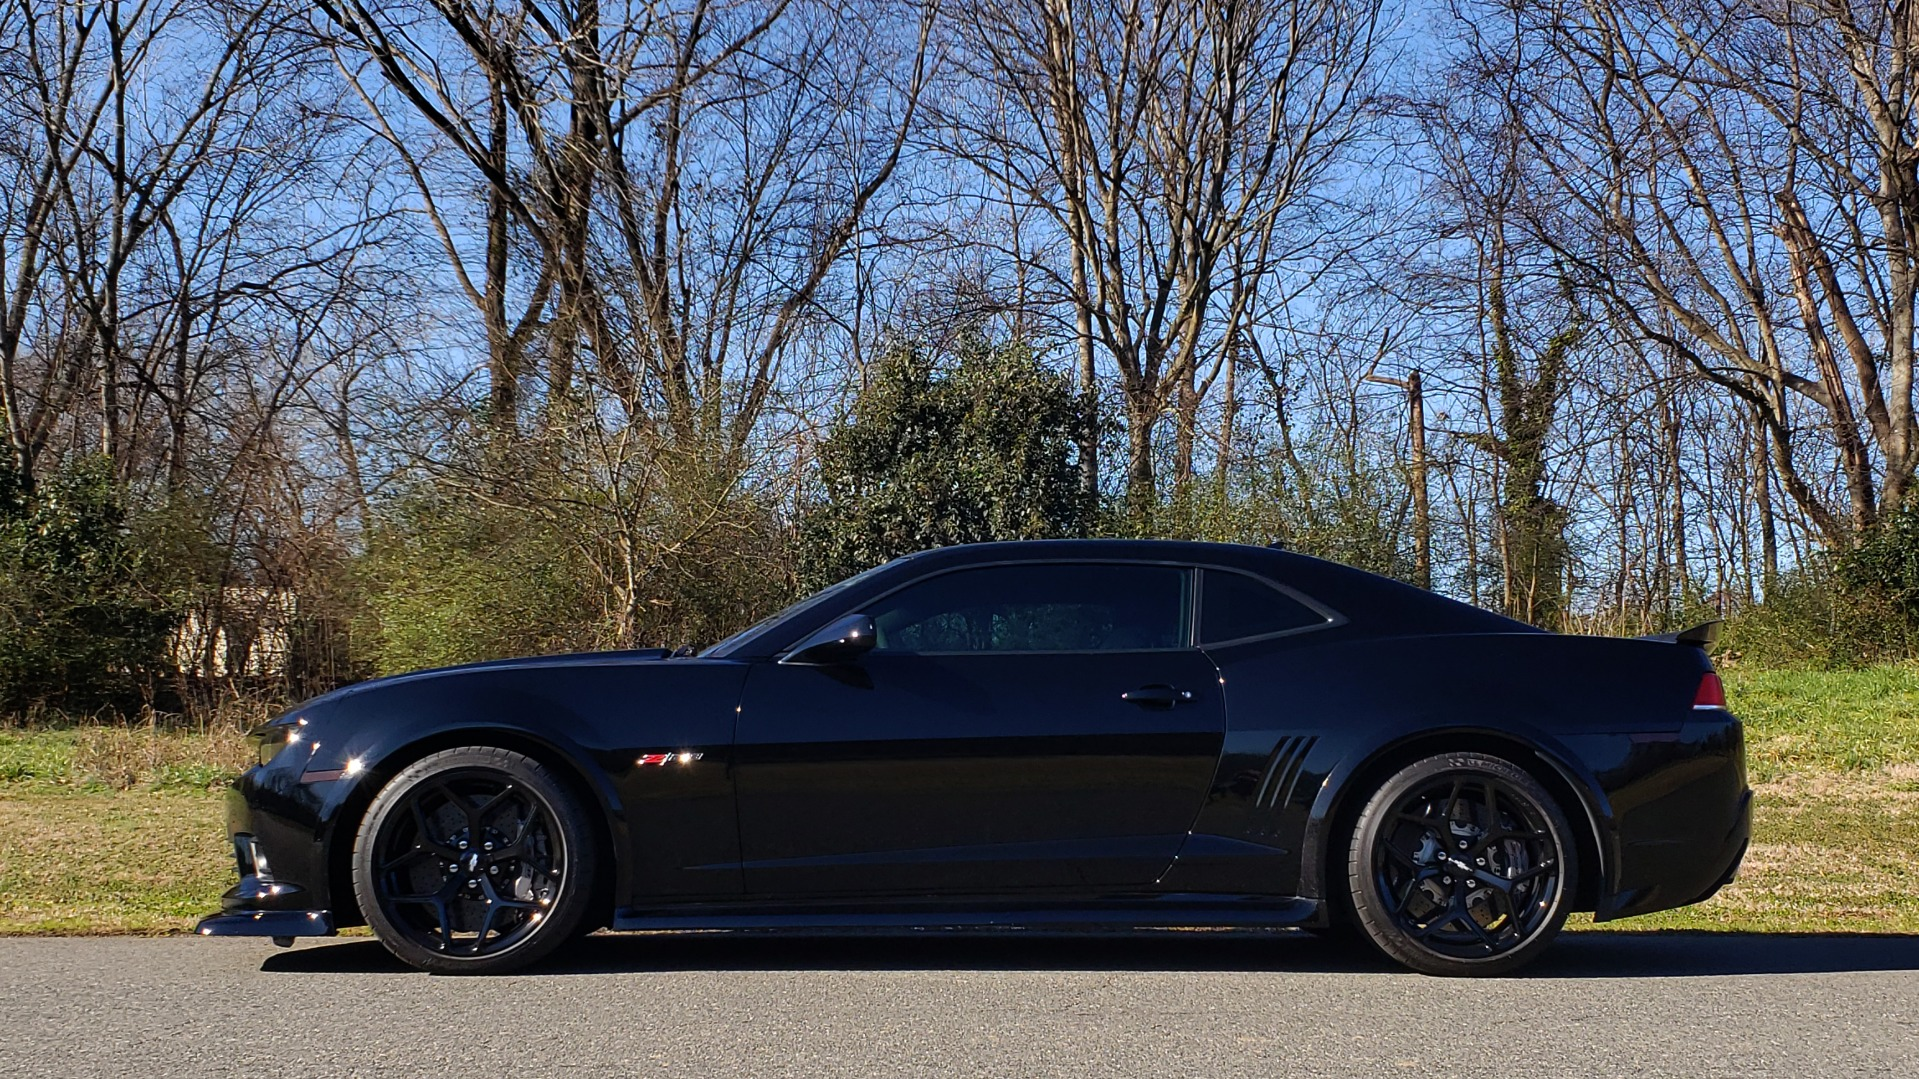 Used 2014 Chevrolet CAMARO Z/28 / 427 7.0L V8 505HP / RADIO / AIR CONDITIONING for sale Sold at Formula Imports in Charlotte NC 28227 18